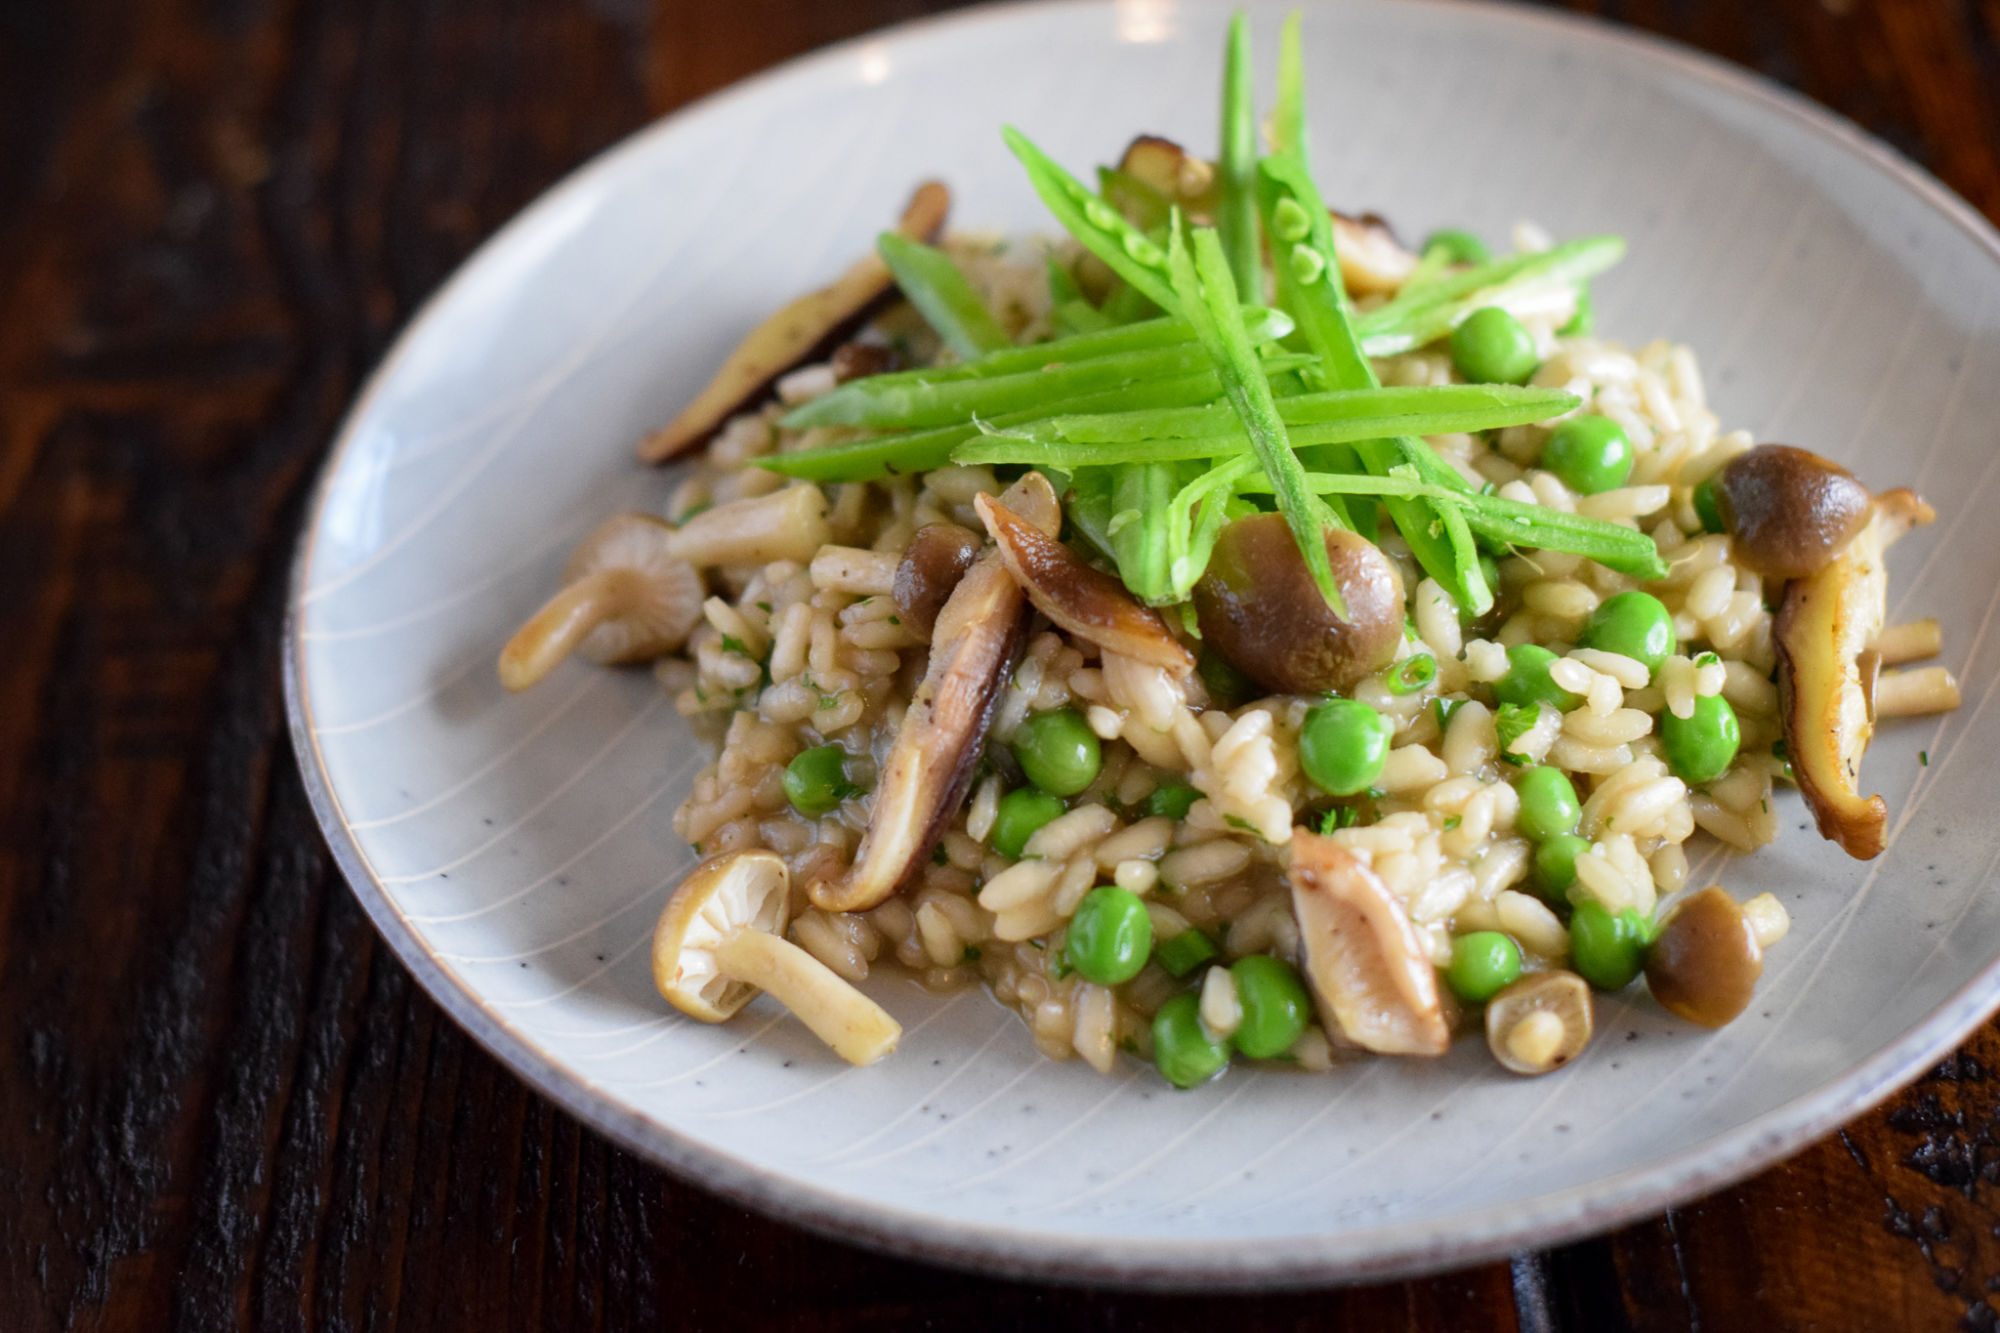 pea risotto wild mushrooms on a gray dish and dark table